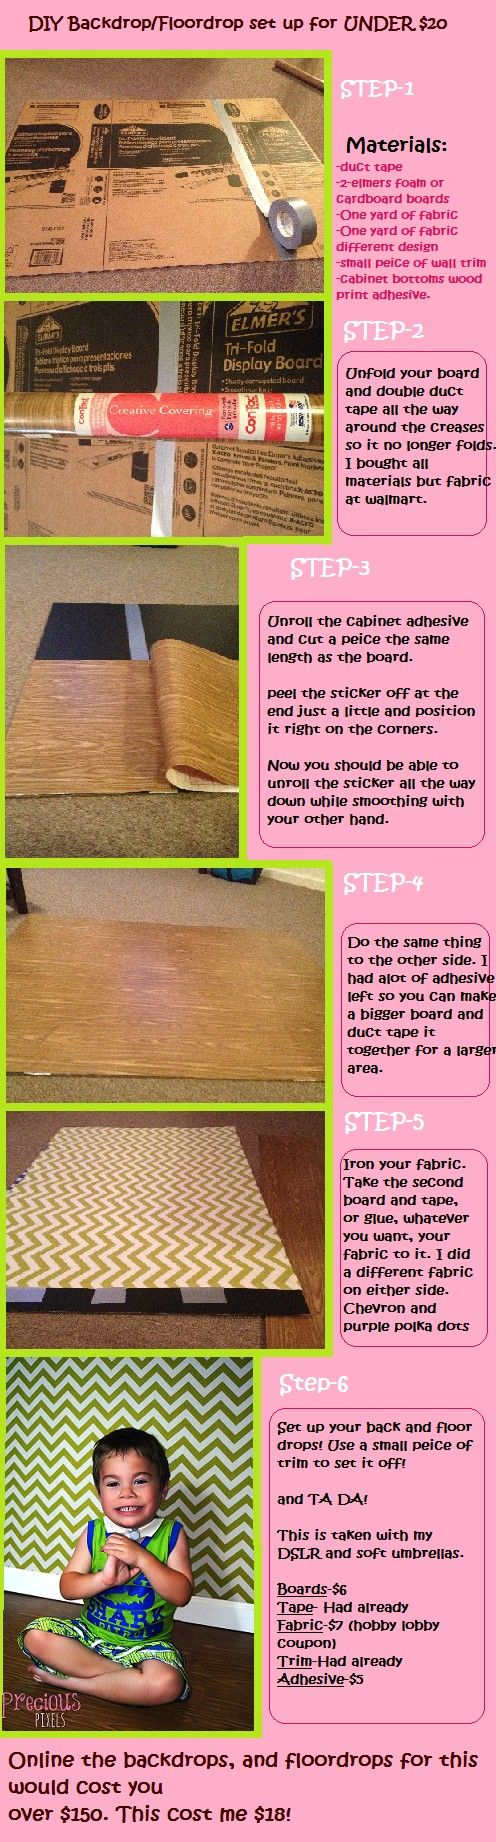 DIY Cute floor and backdrop for under $20